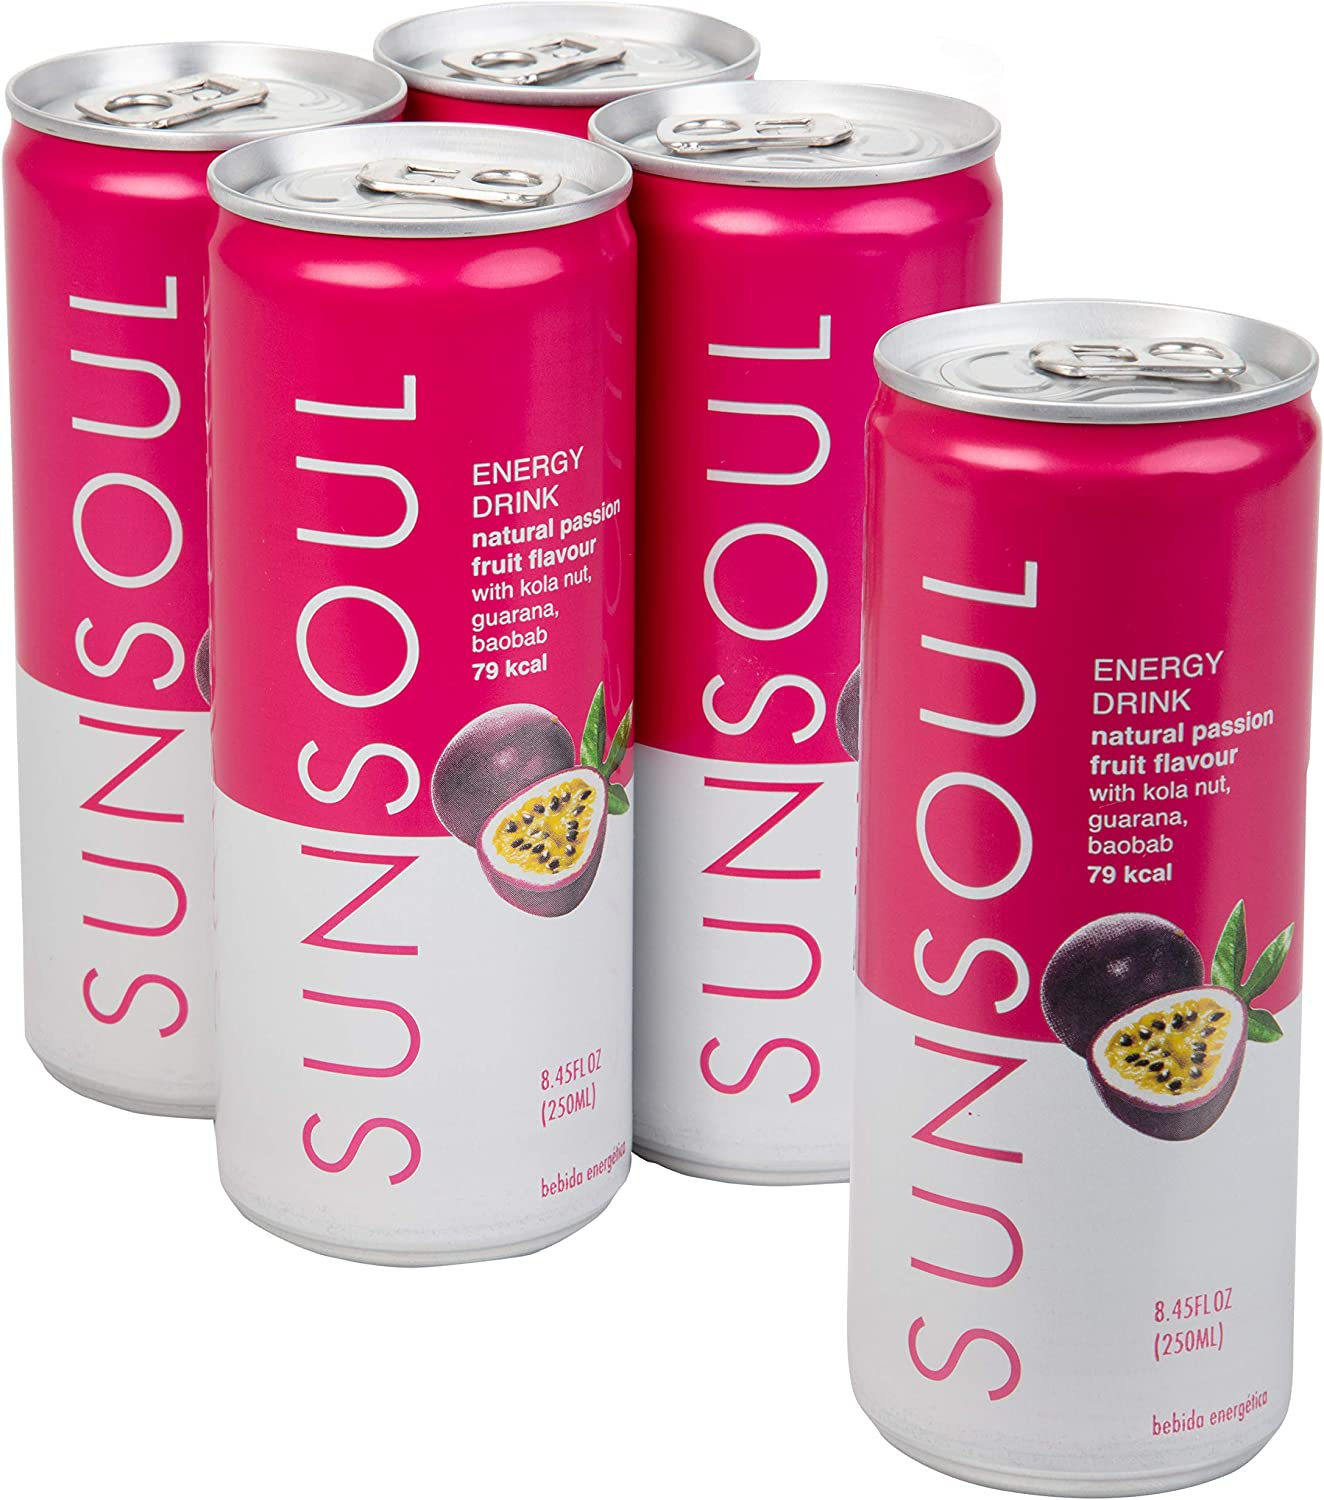 SUNSOUL All Natural Healthy Energy Drink - Low Calories & No Refined Sugar & No Artificial Ingredients - Passion Fruit Flavor - 4 Pack